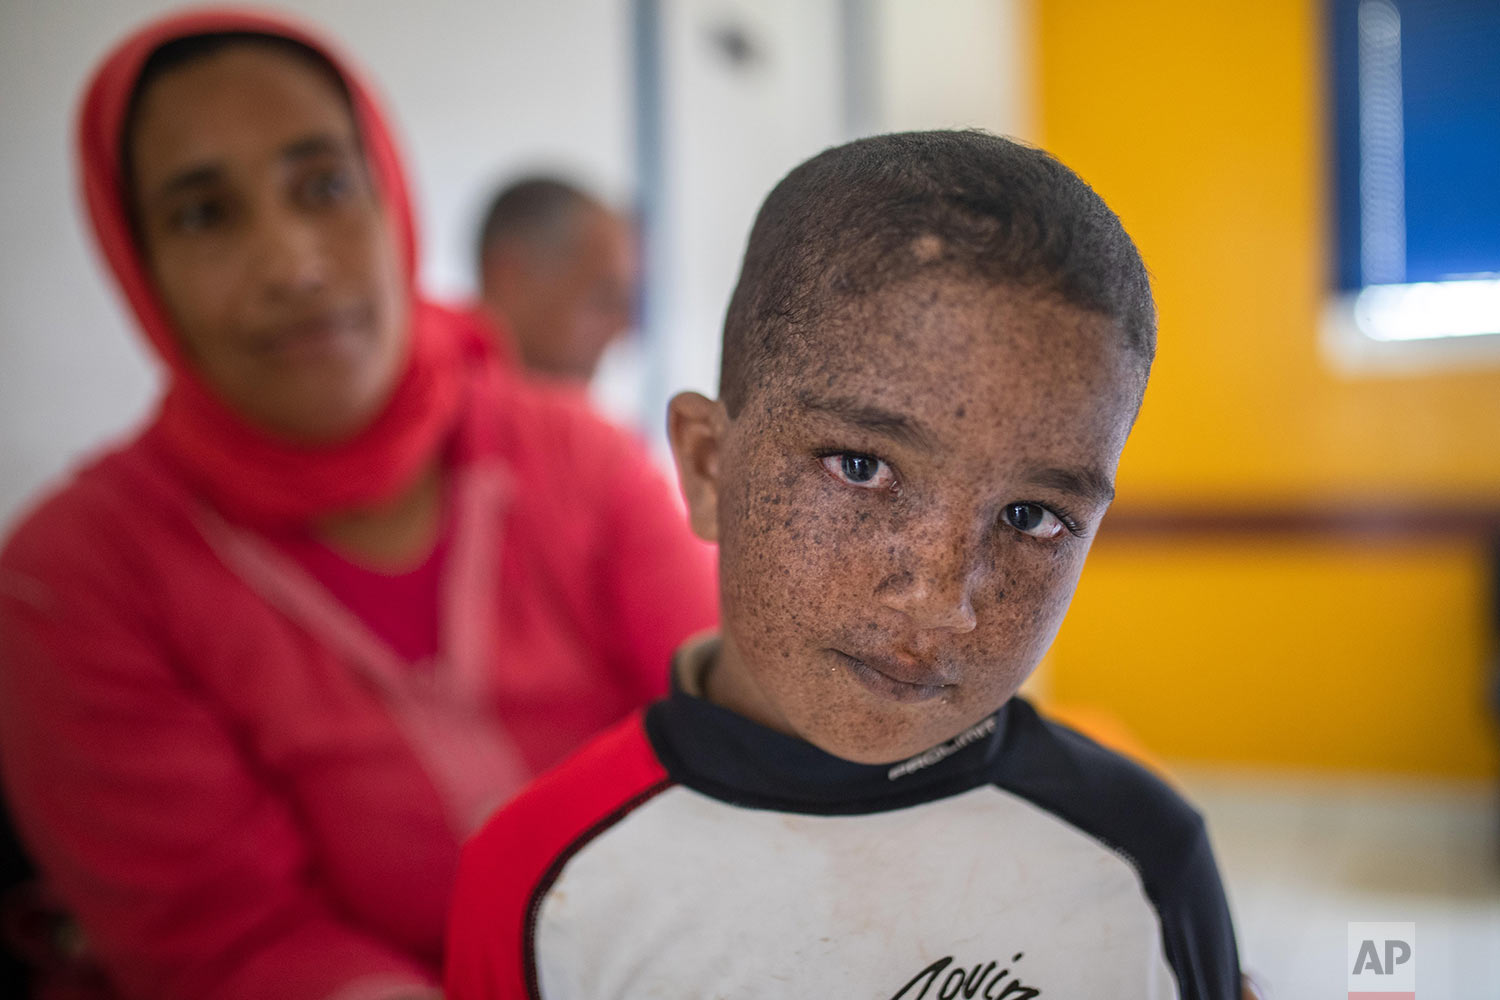 Mohammad, 6, who is affected by a rare disorder called xeroderma pigmentosum, or XP, waits with his mother inside a hospital in Casablanca, Morocco, July 24, 2019. (AP Photo/Mosa'ab Elshamy)